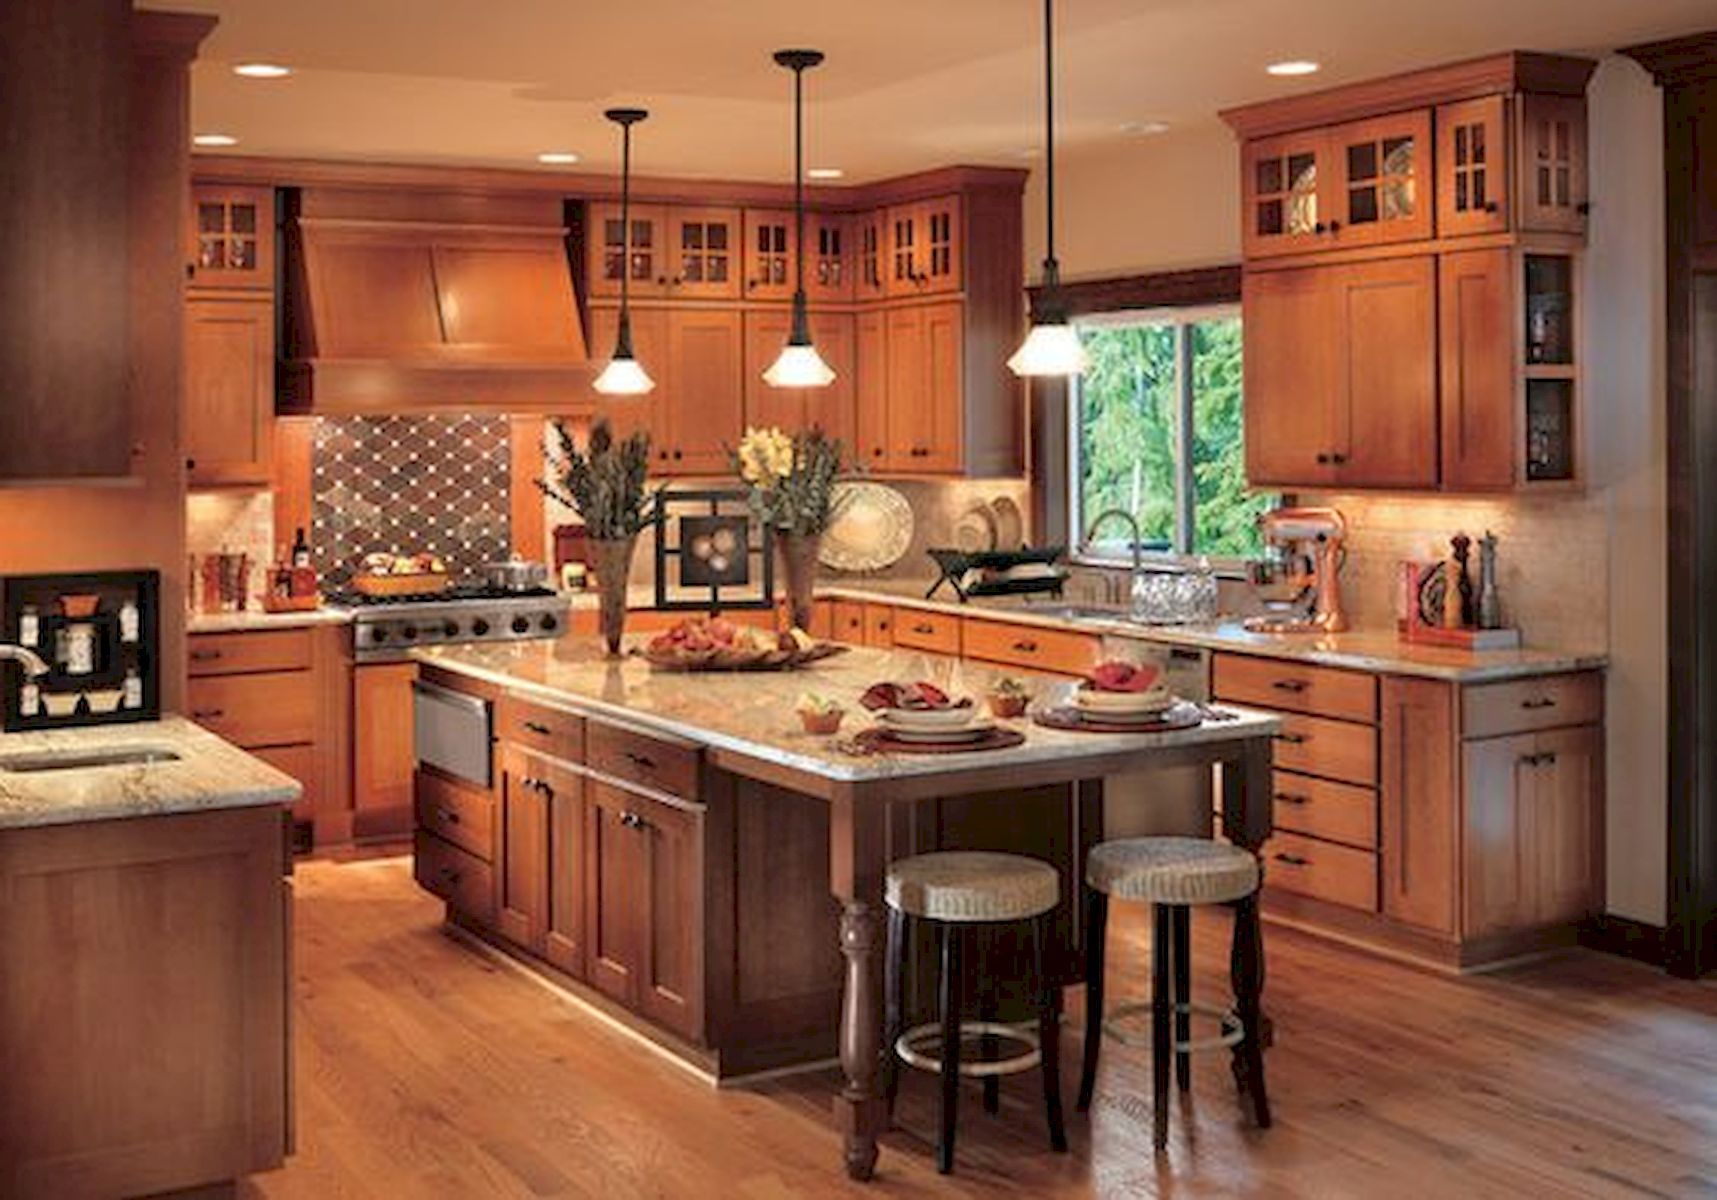 Adorable 40 Awesome Craftsman Style Kitchen Design Ideas Https Livingmarch Com 40 Awesome Craft Craftsman Style Kitchens Kitchen Style Kitchen Cabinet Styles